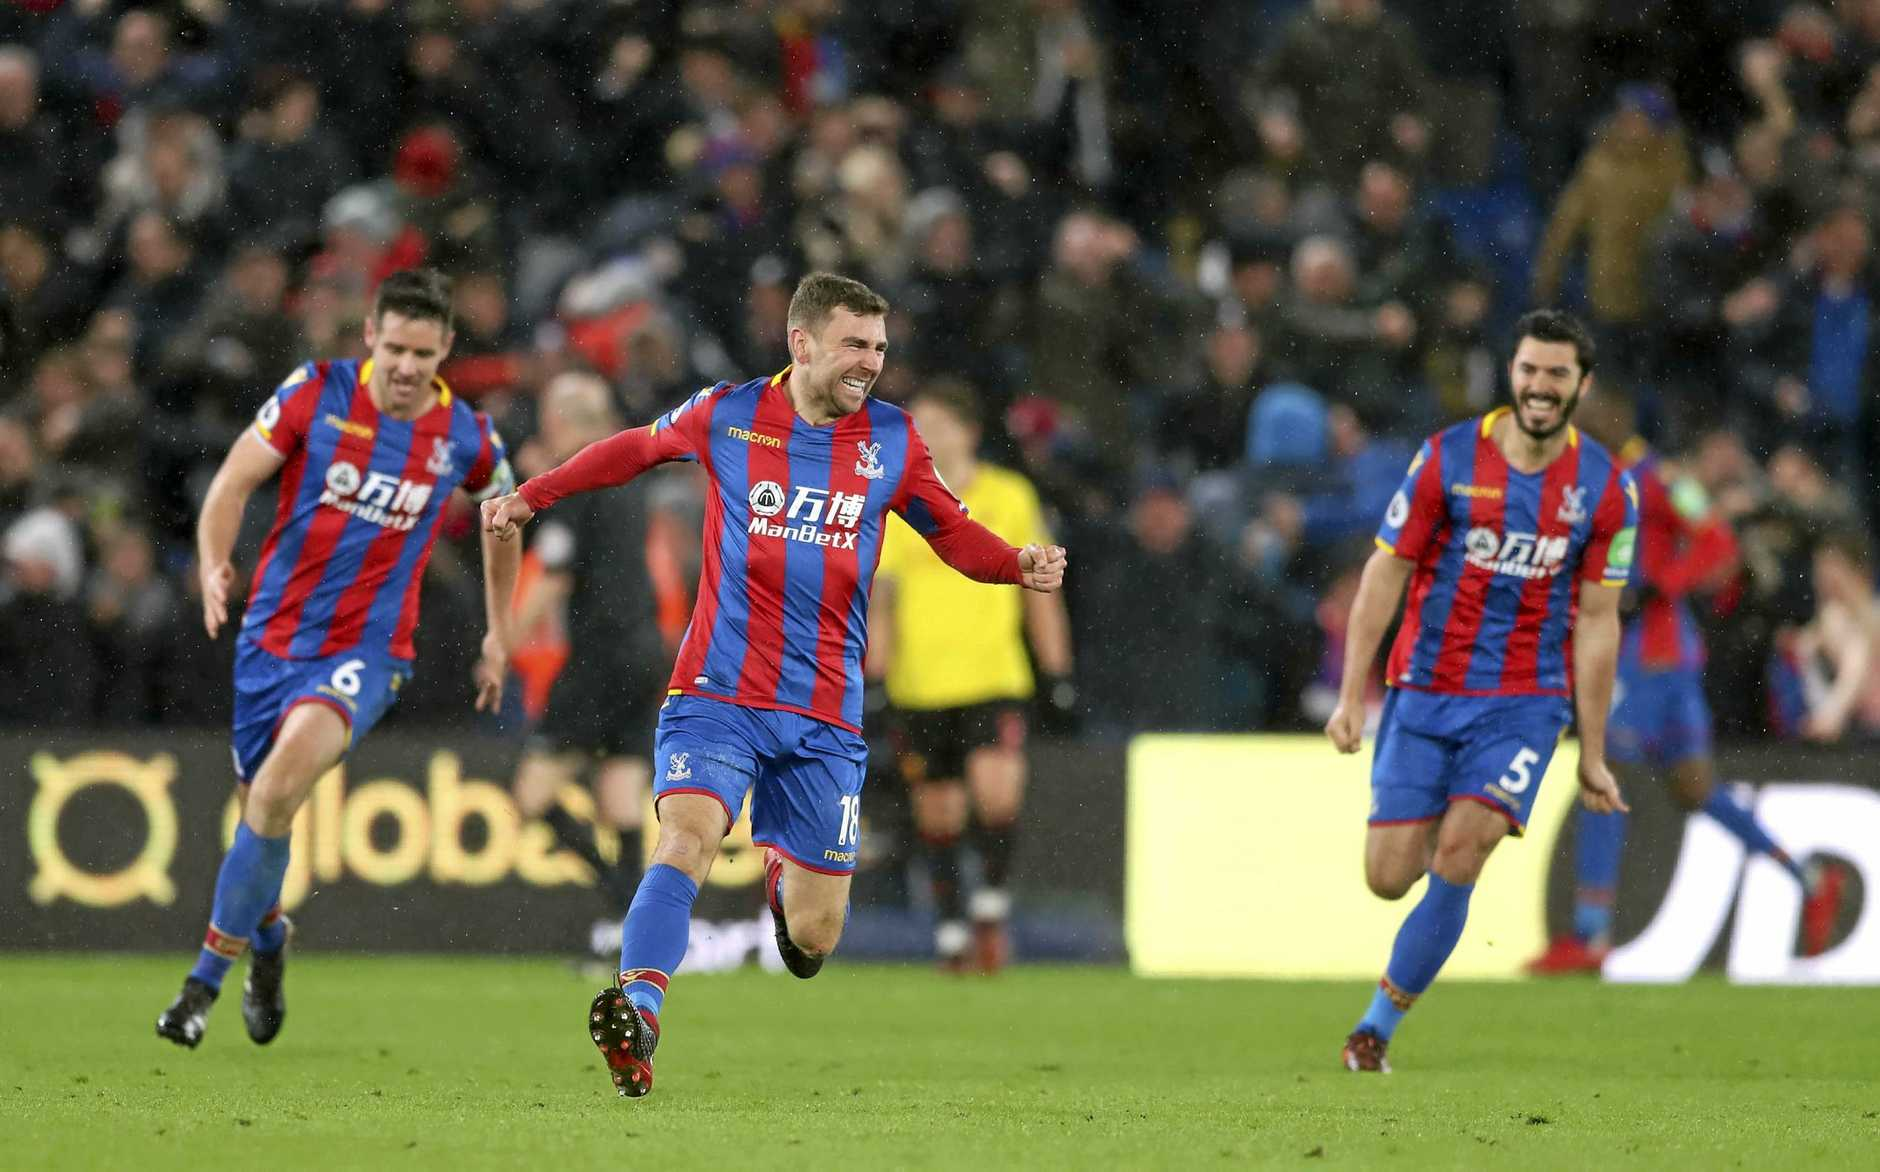 Crystal Palace's James McArthur, centre, celebrates scoring his side's late winner in the 2-1 victory over Watford.